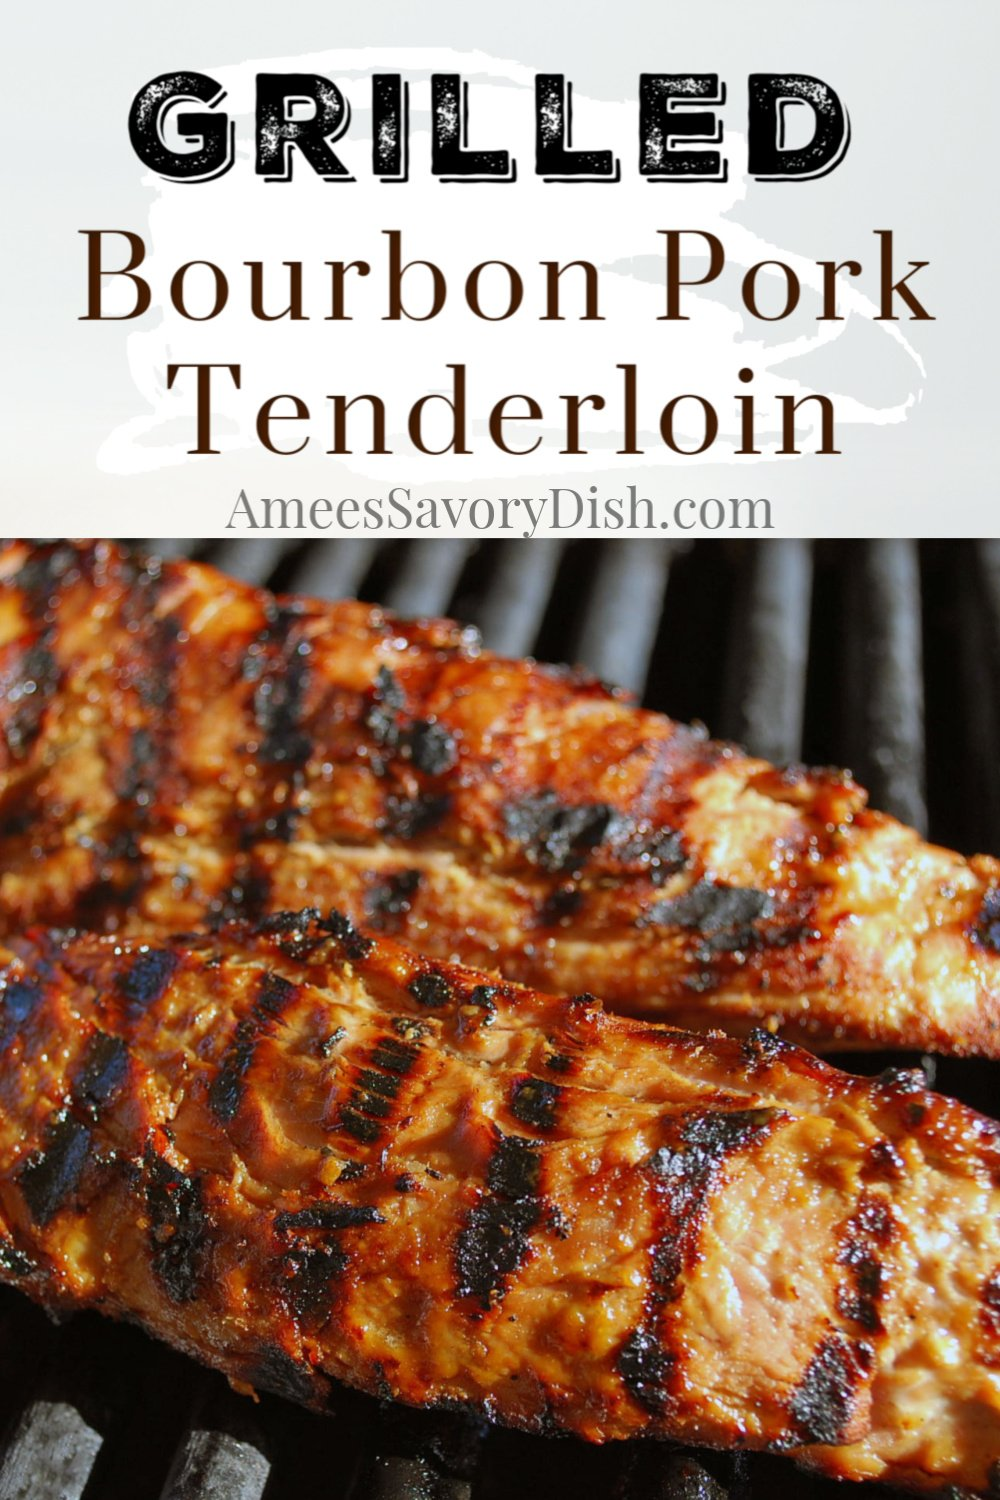 This grilled bourbon pork tenderloin is flavorful and easy made with Kentucky bourbon, soy sauce, brown sugar, garlic, dijon mustard, and spices. This easy grill recipe is packed with protein and perfect for meal prep! #porktenderloin #grilledporktenderloin #bourbonpork #porkrecipe via @Ameecooks